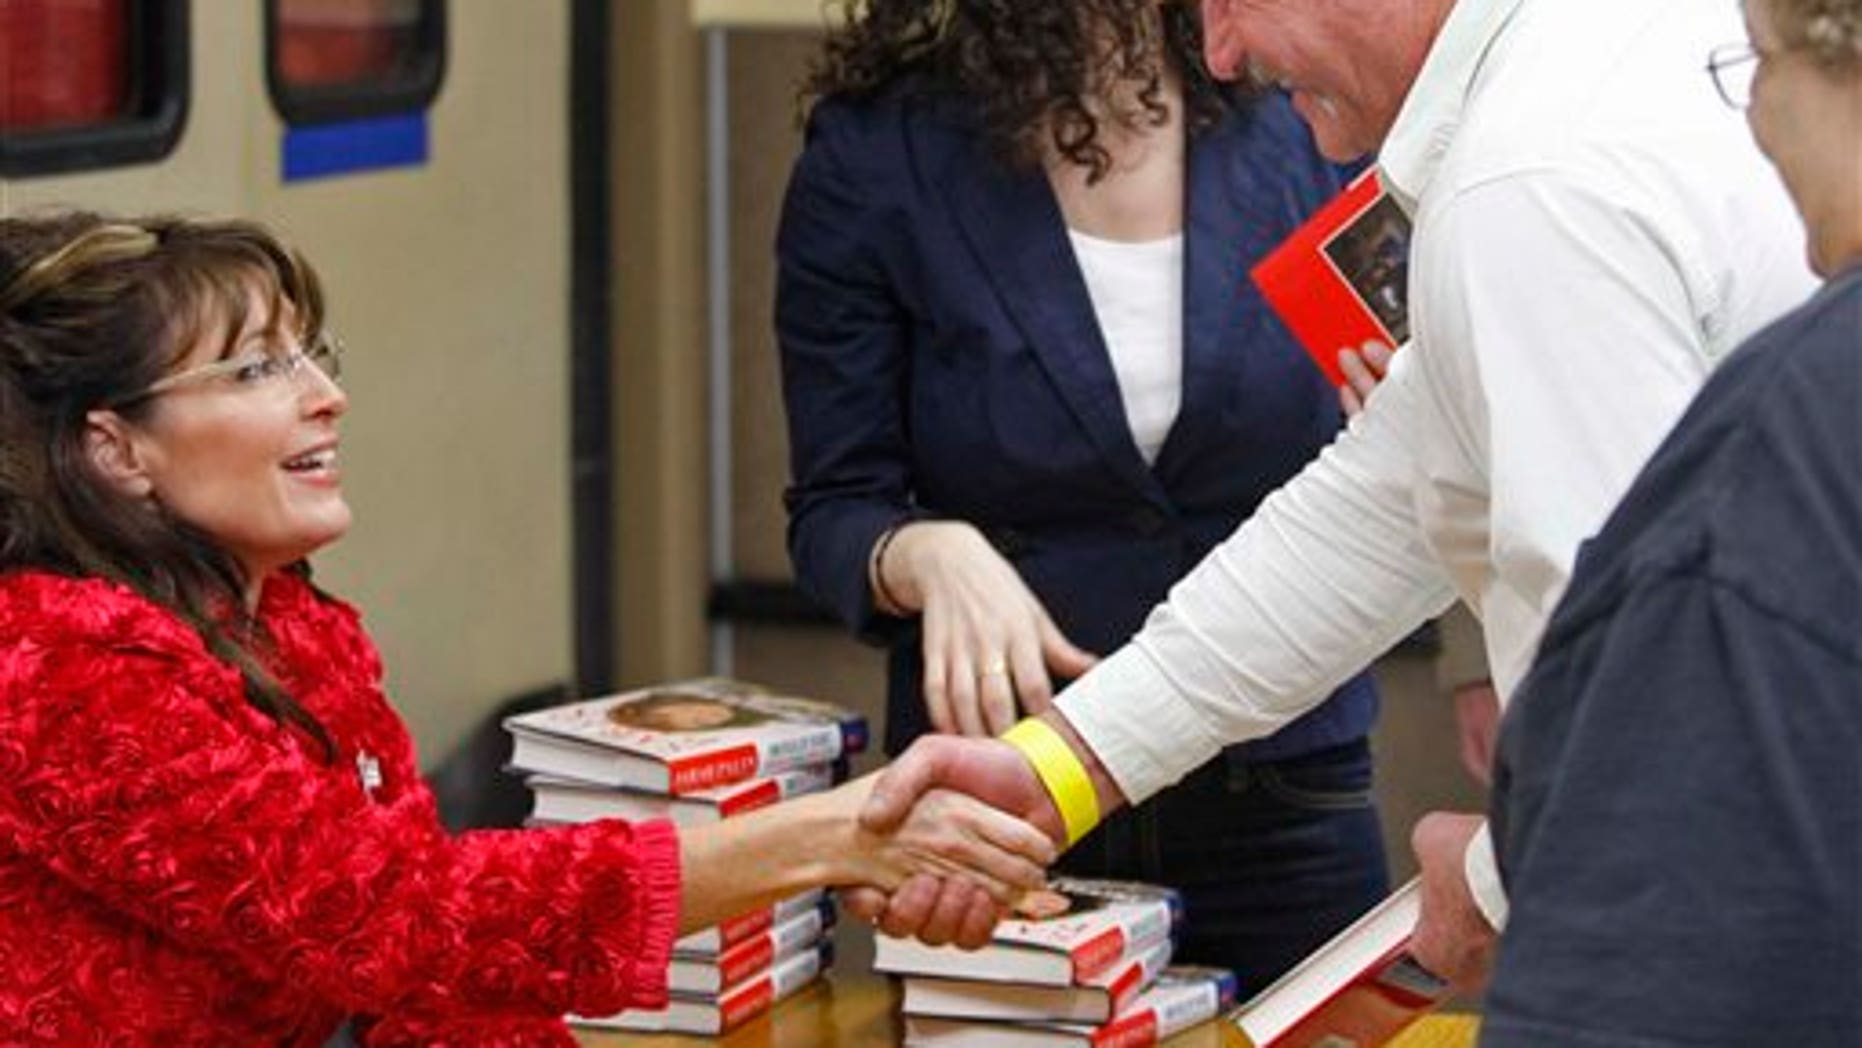 Sarah Palin shakes hands while signing books inside the Walmart in Spirit Lake, Iowa, Thursday, Dec. 2, 2010. (AP Photo/The Register, John Gaps III)